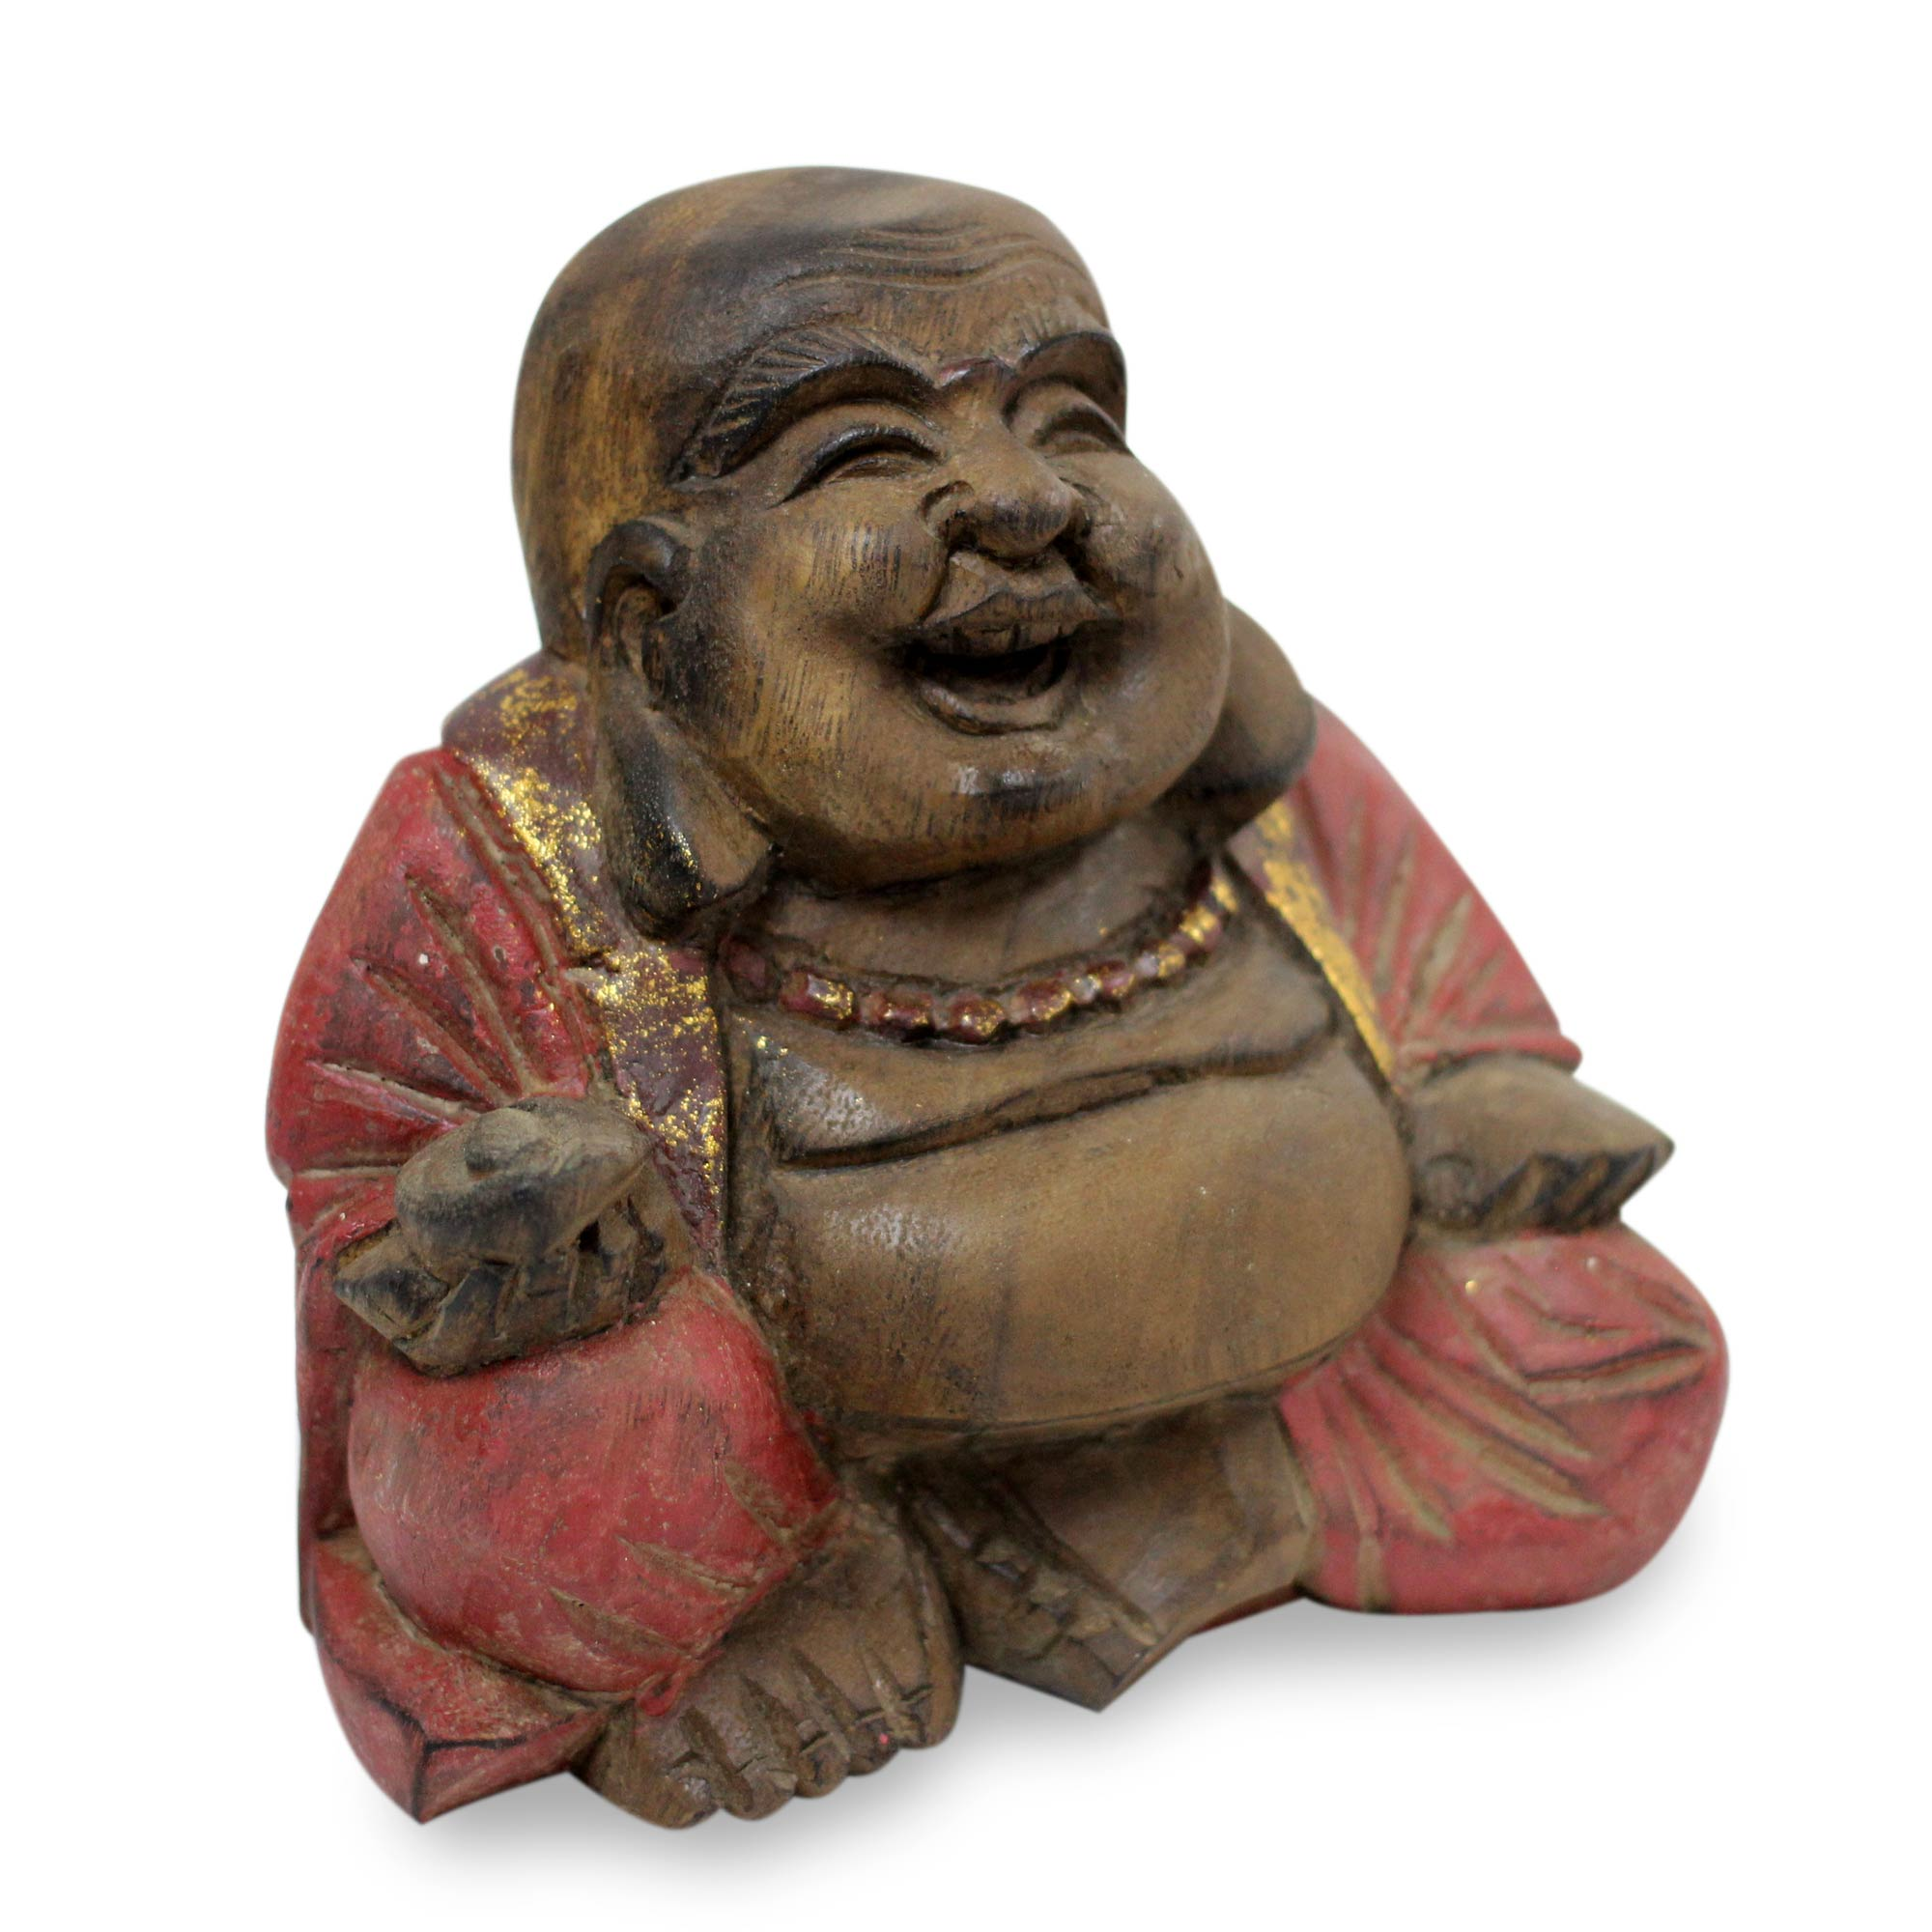 Laughing Buddha Sculpture, 'Laughing Buddha in Red'